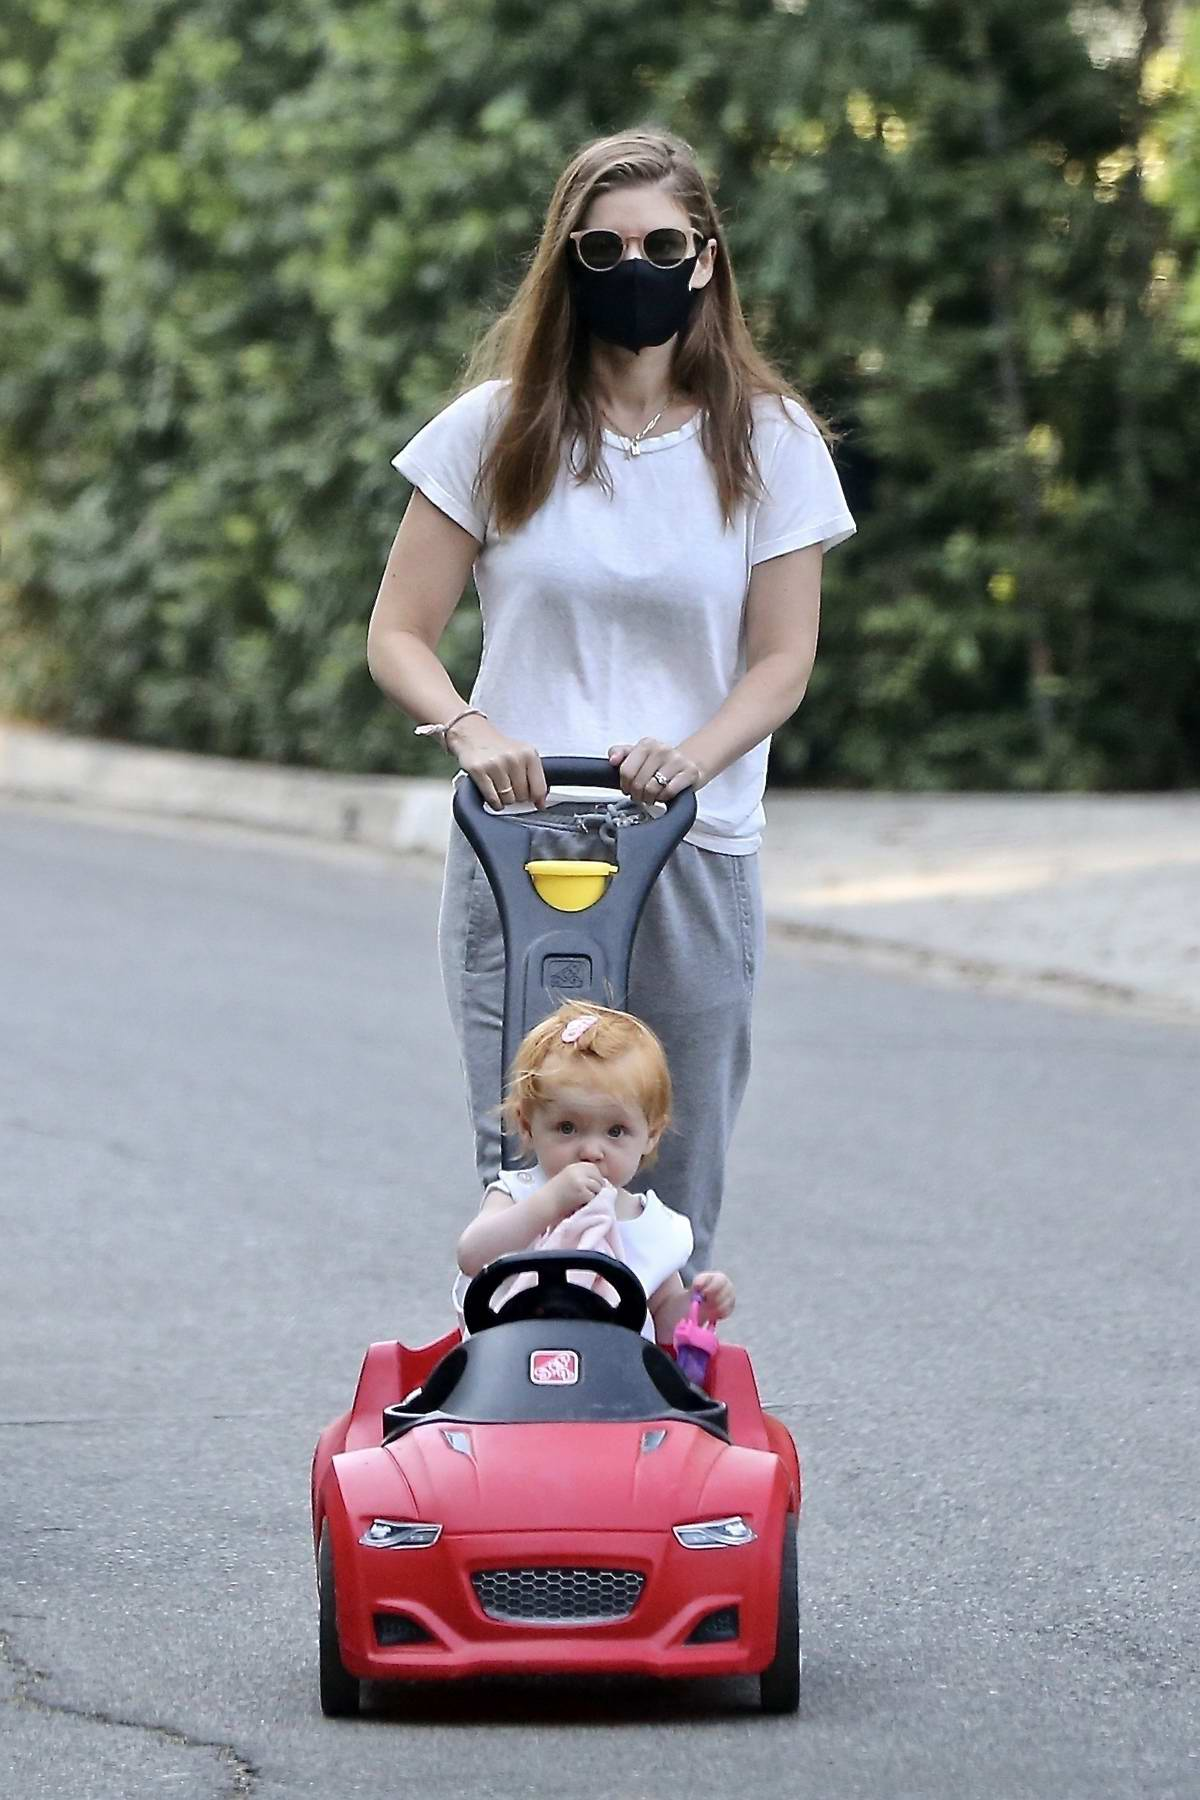 Kate Mara takes her daughter out for a stroll in Los Feliz, California